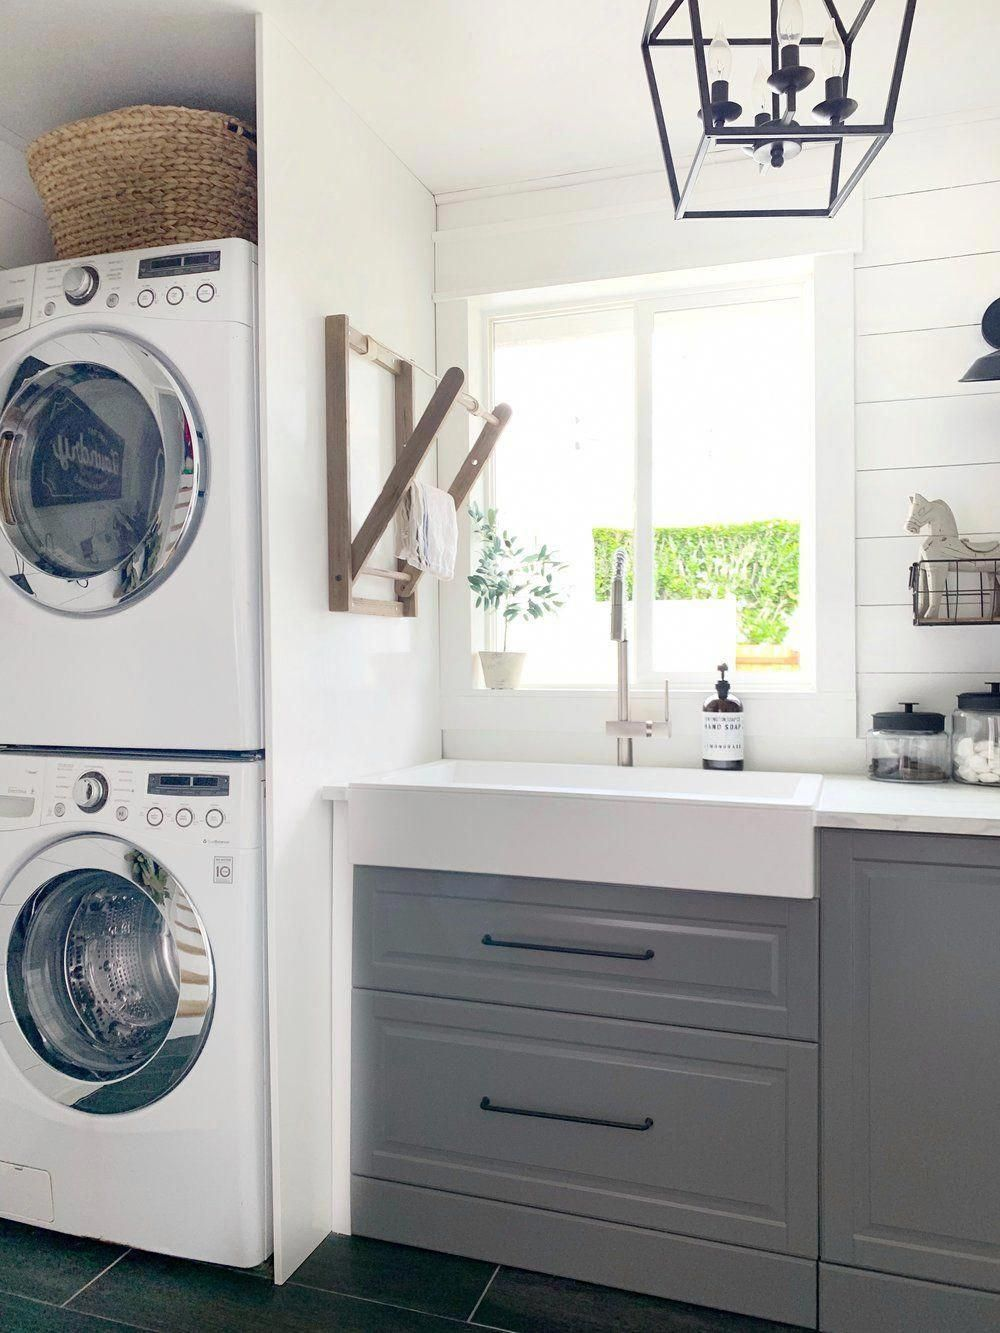 Laundry Room Reveal with Elkay - Dreaming of Homemaking